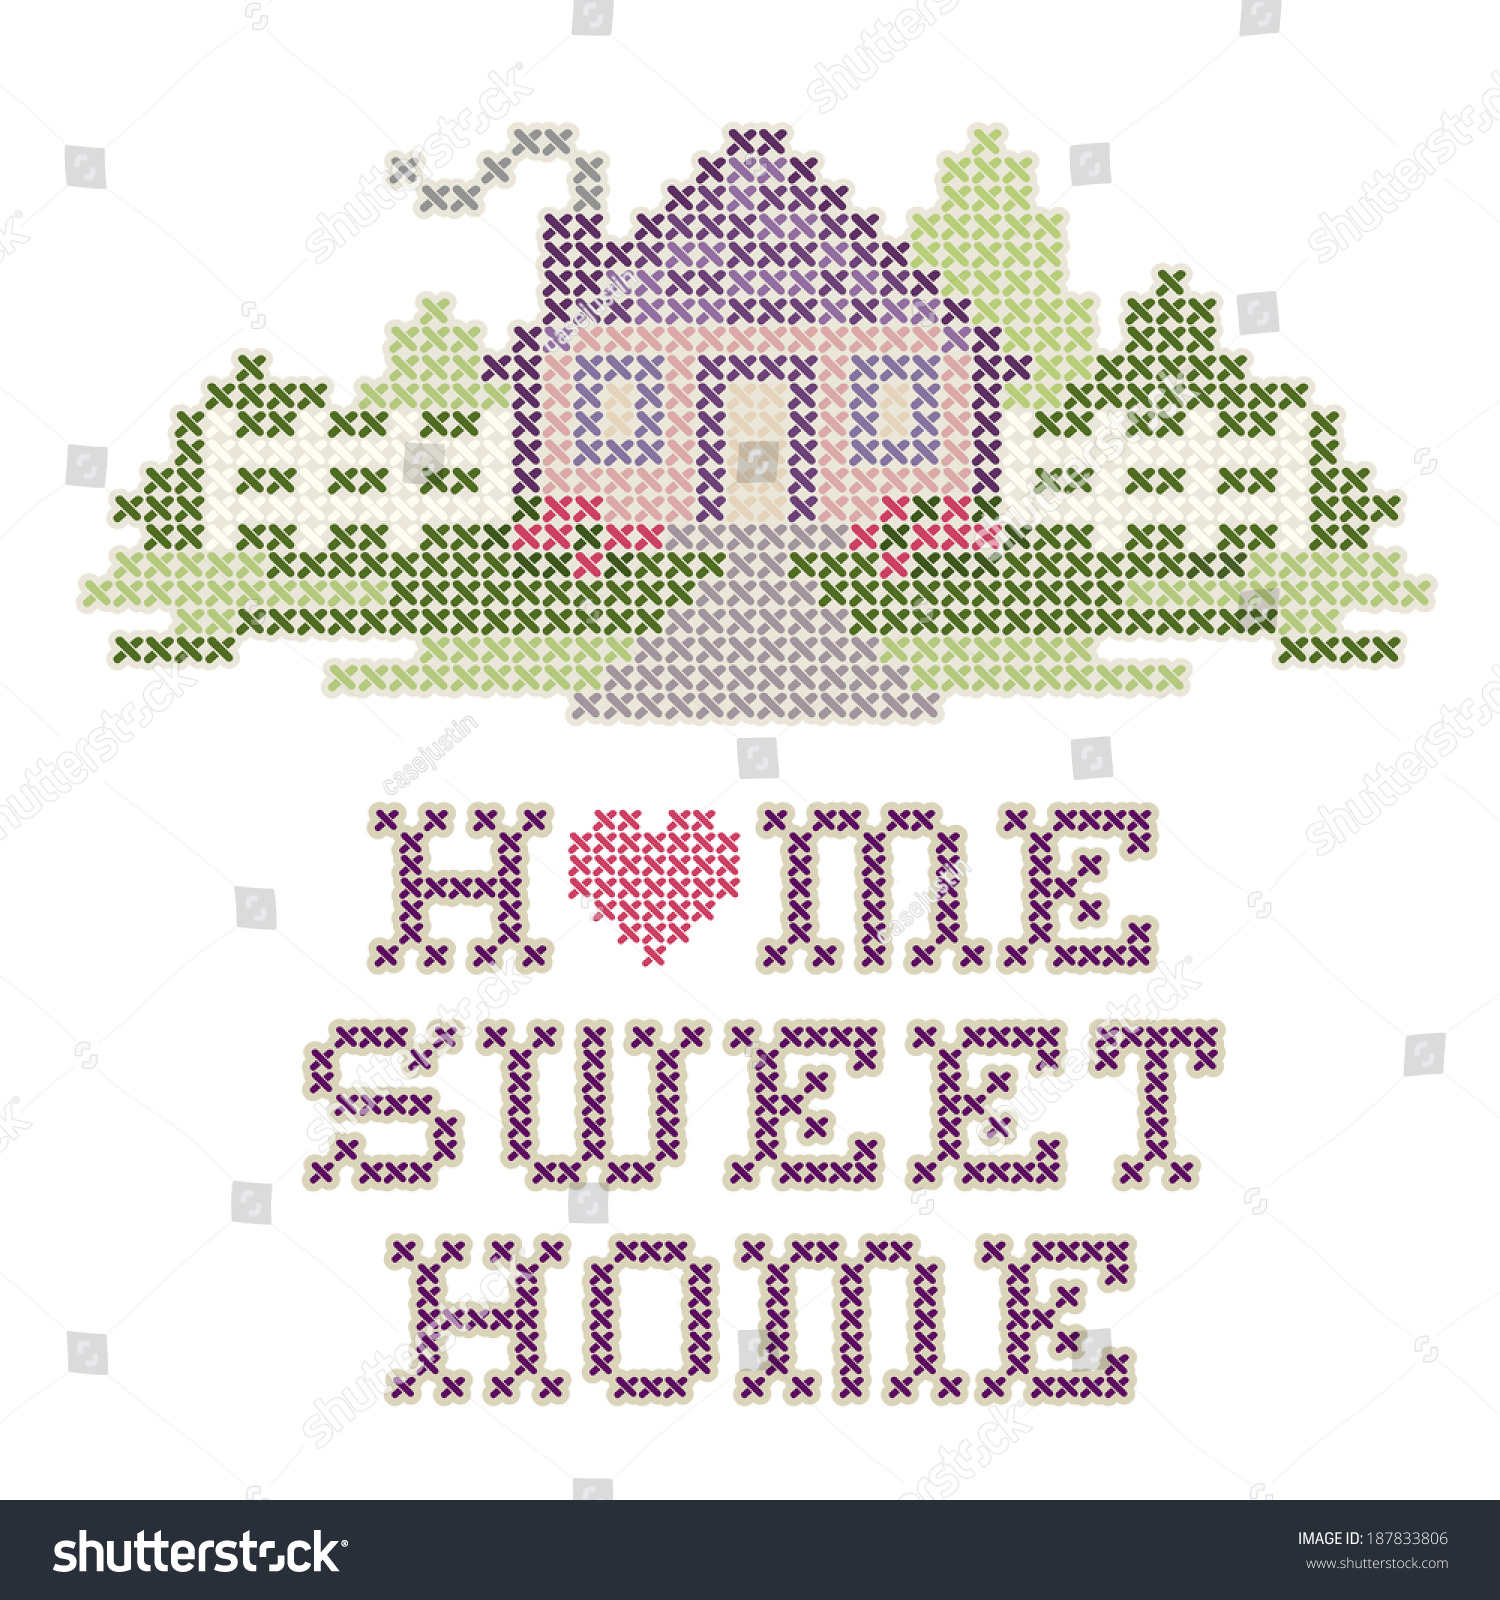 Royalty Free Home Sweet Home Embroidery Cross 187833806 Stock